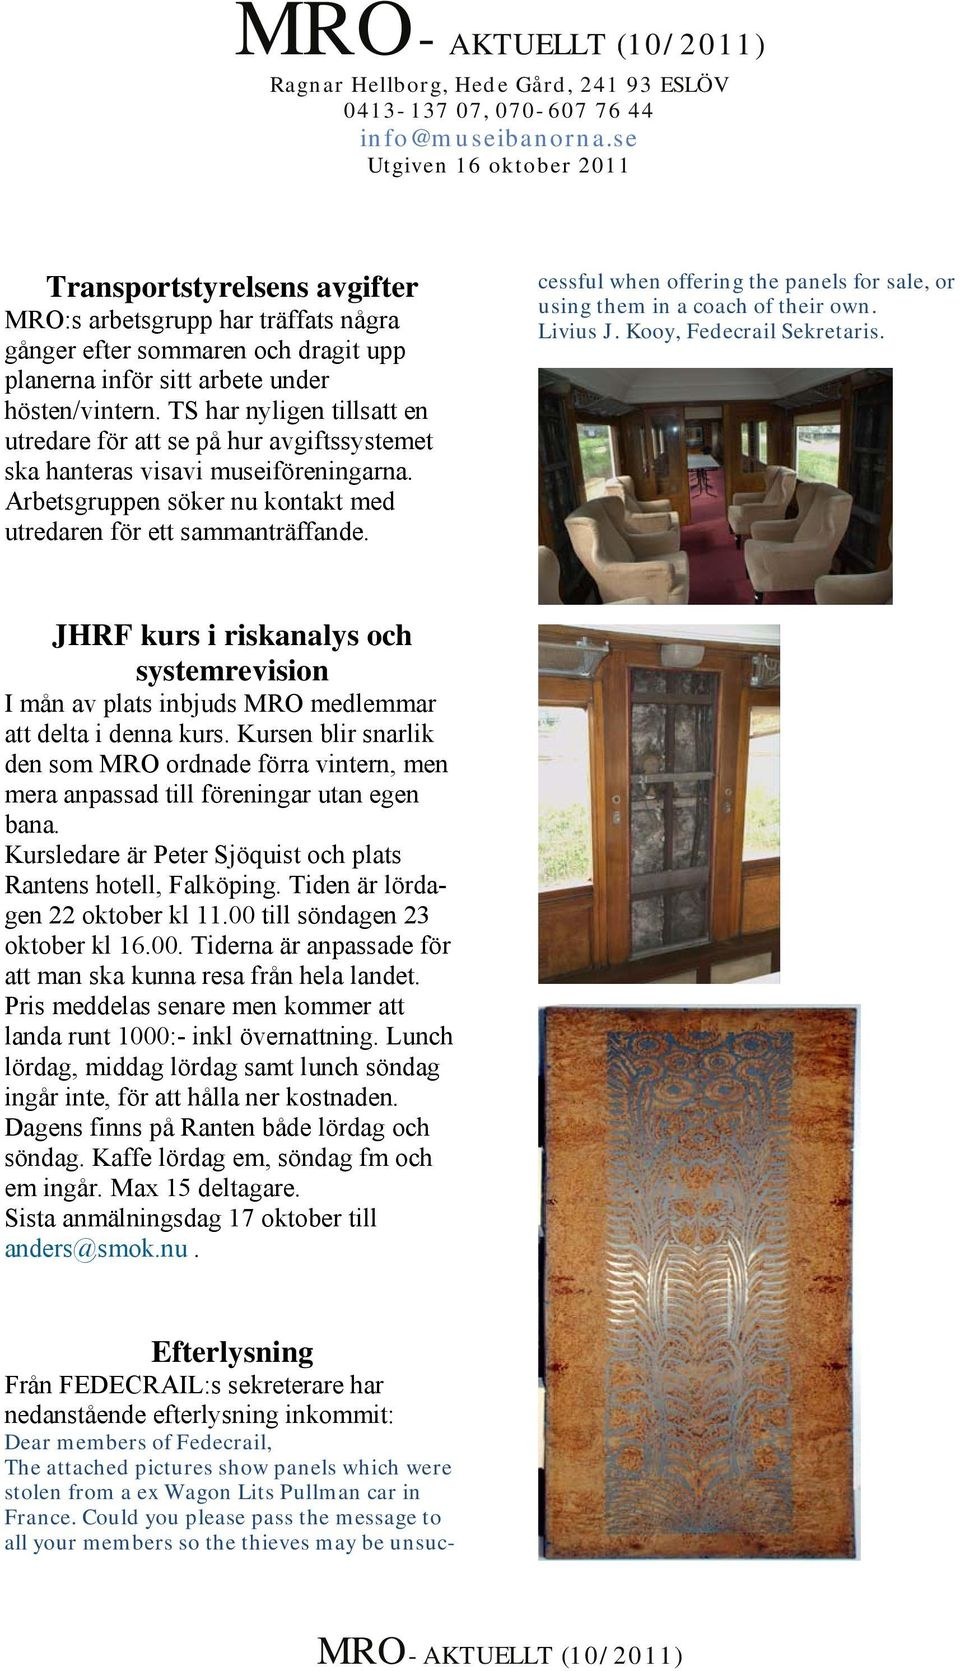 Efterlysning Från FEDECRAIL:s sekreterare har nedanstående efterlysning inkommit: Dear members of Fedecrail, The attached pictures show panels which were stolen from a ex Wagon Lits Pullman car in